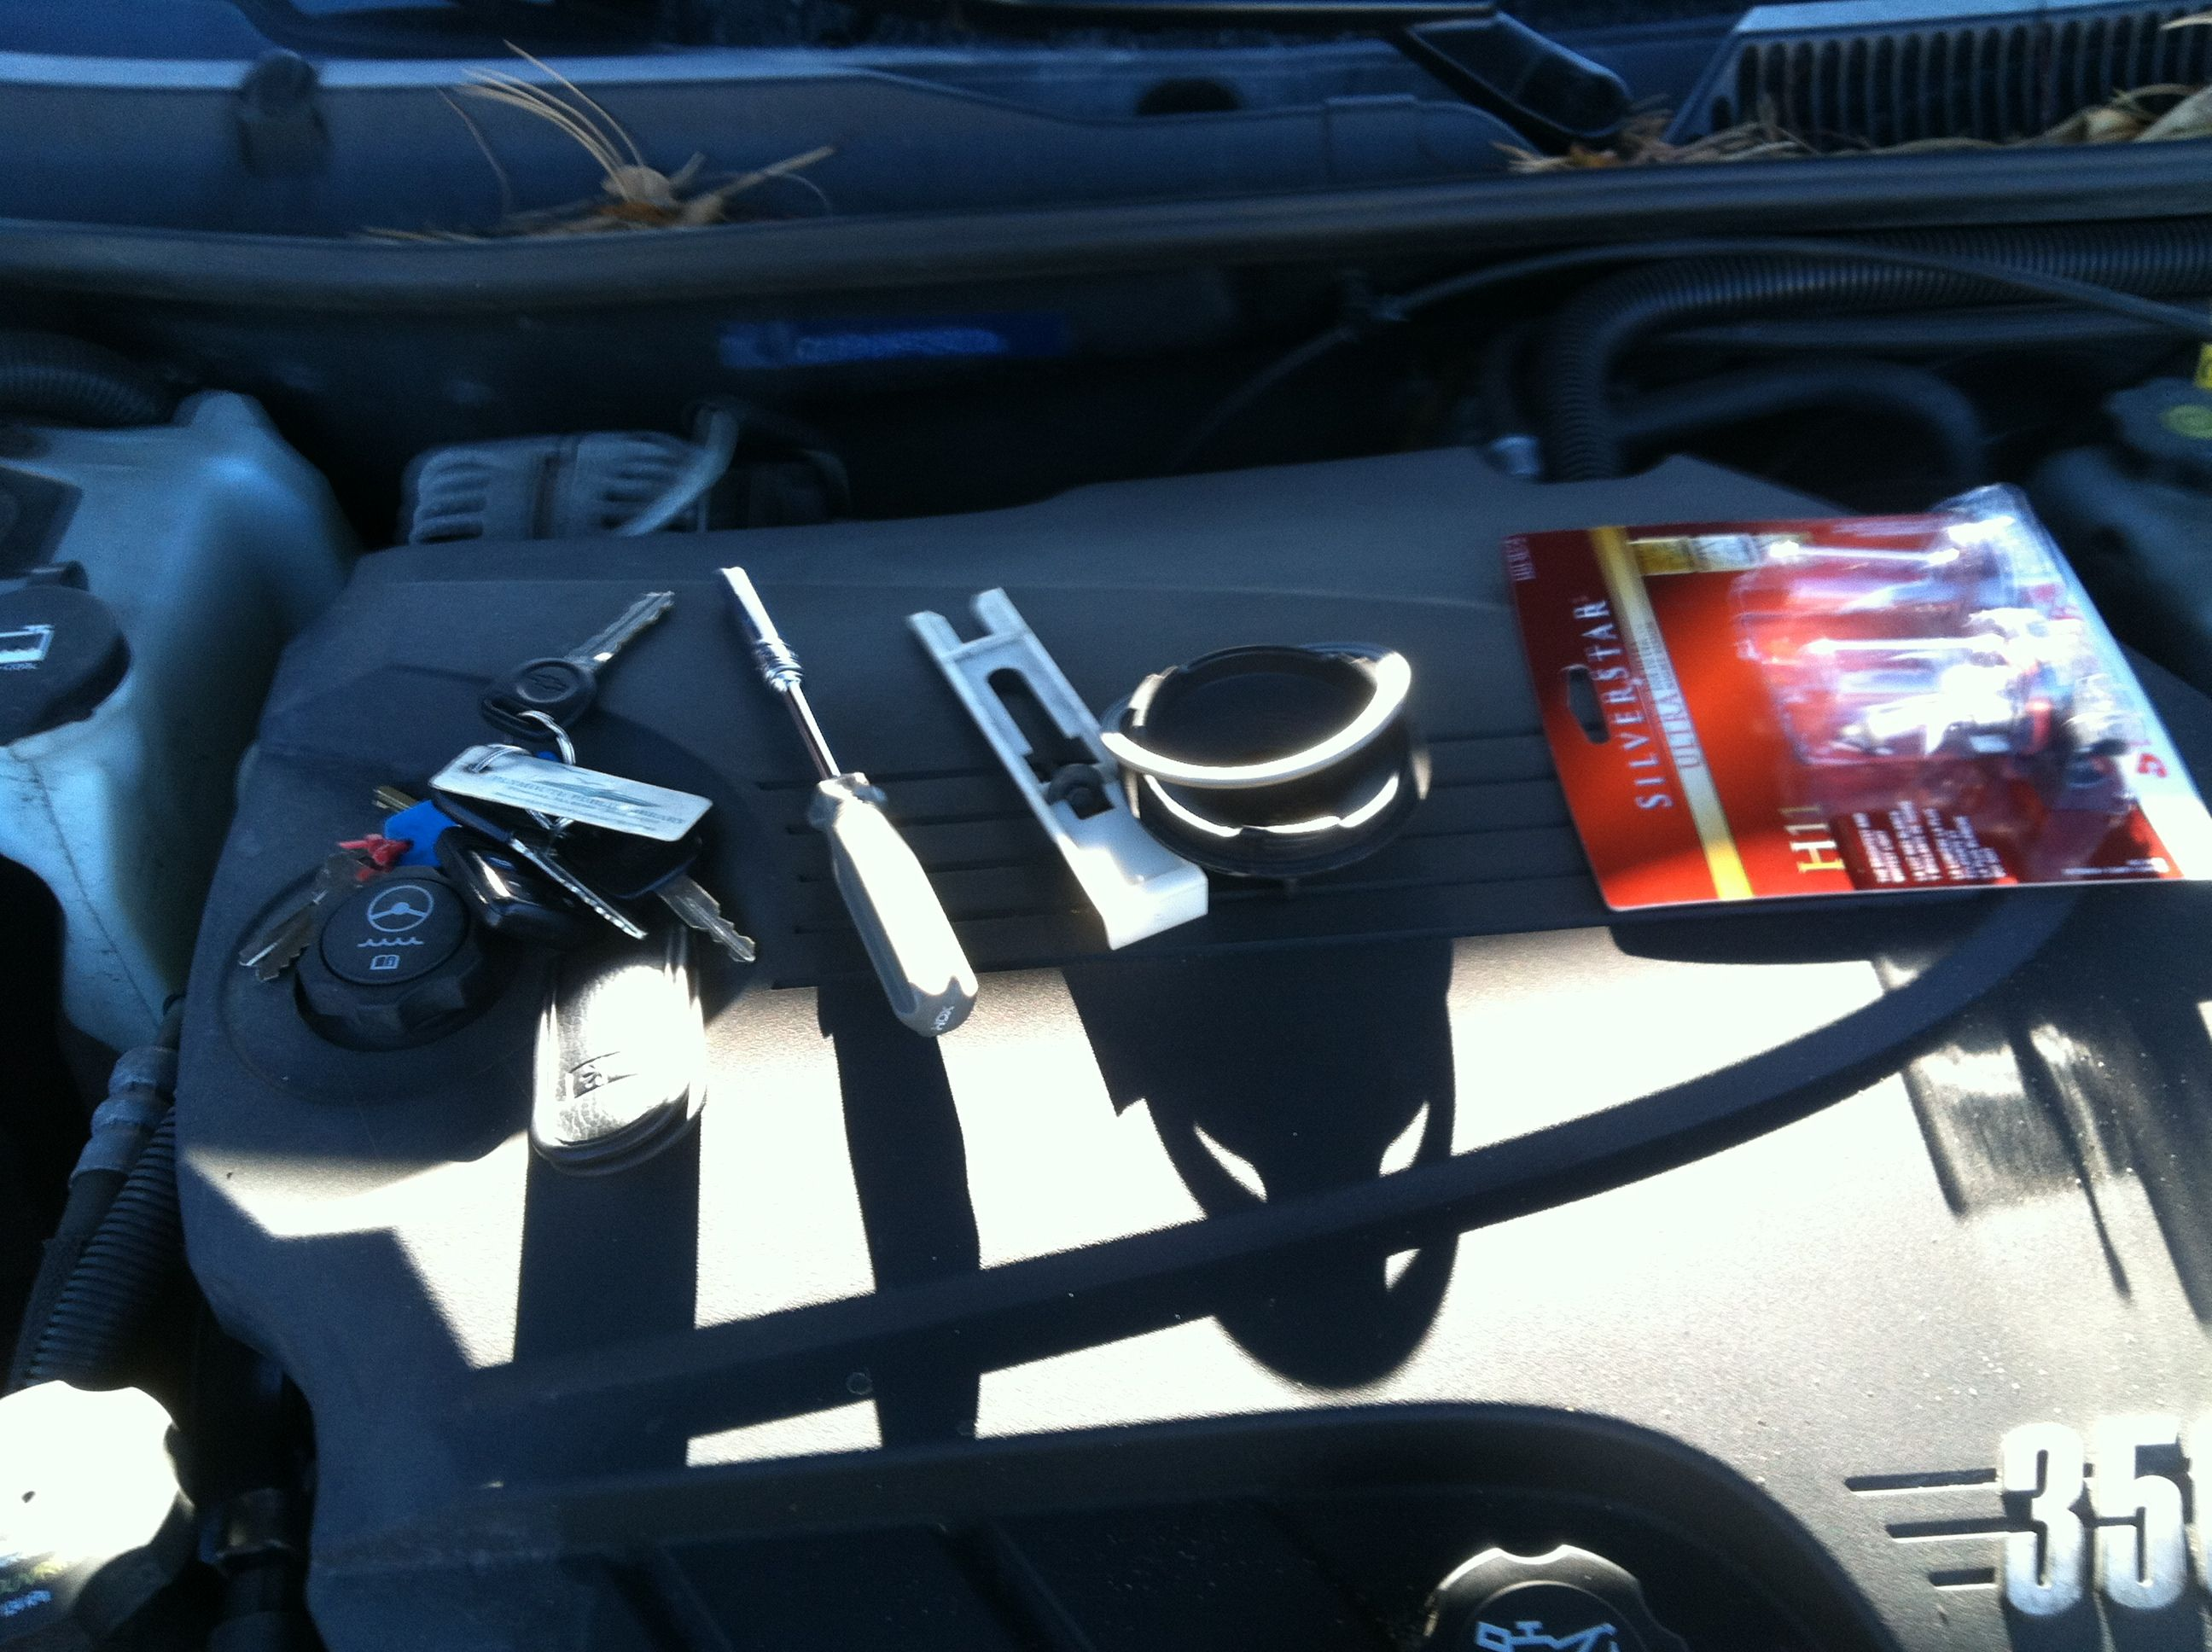 Low Beam Headlight Bulb Replacement 2009 Chevy Impala